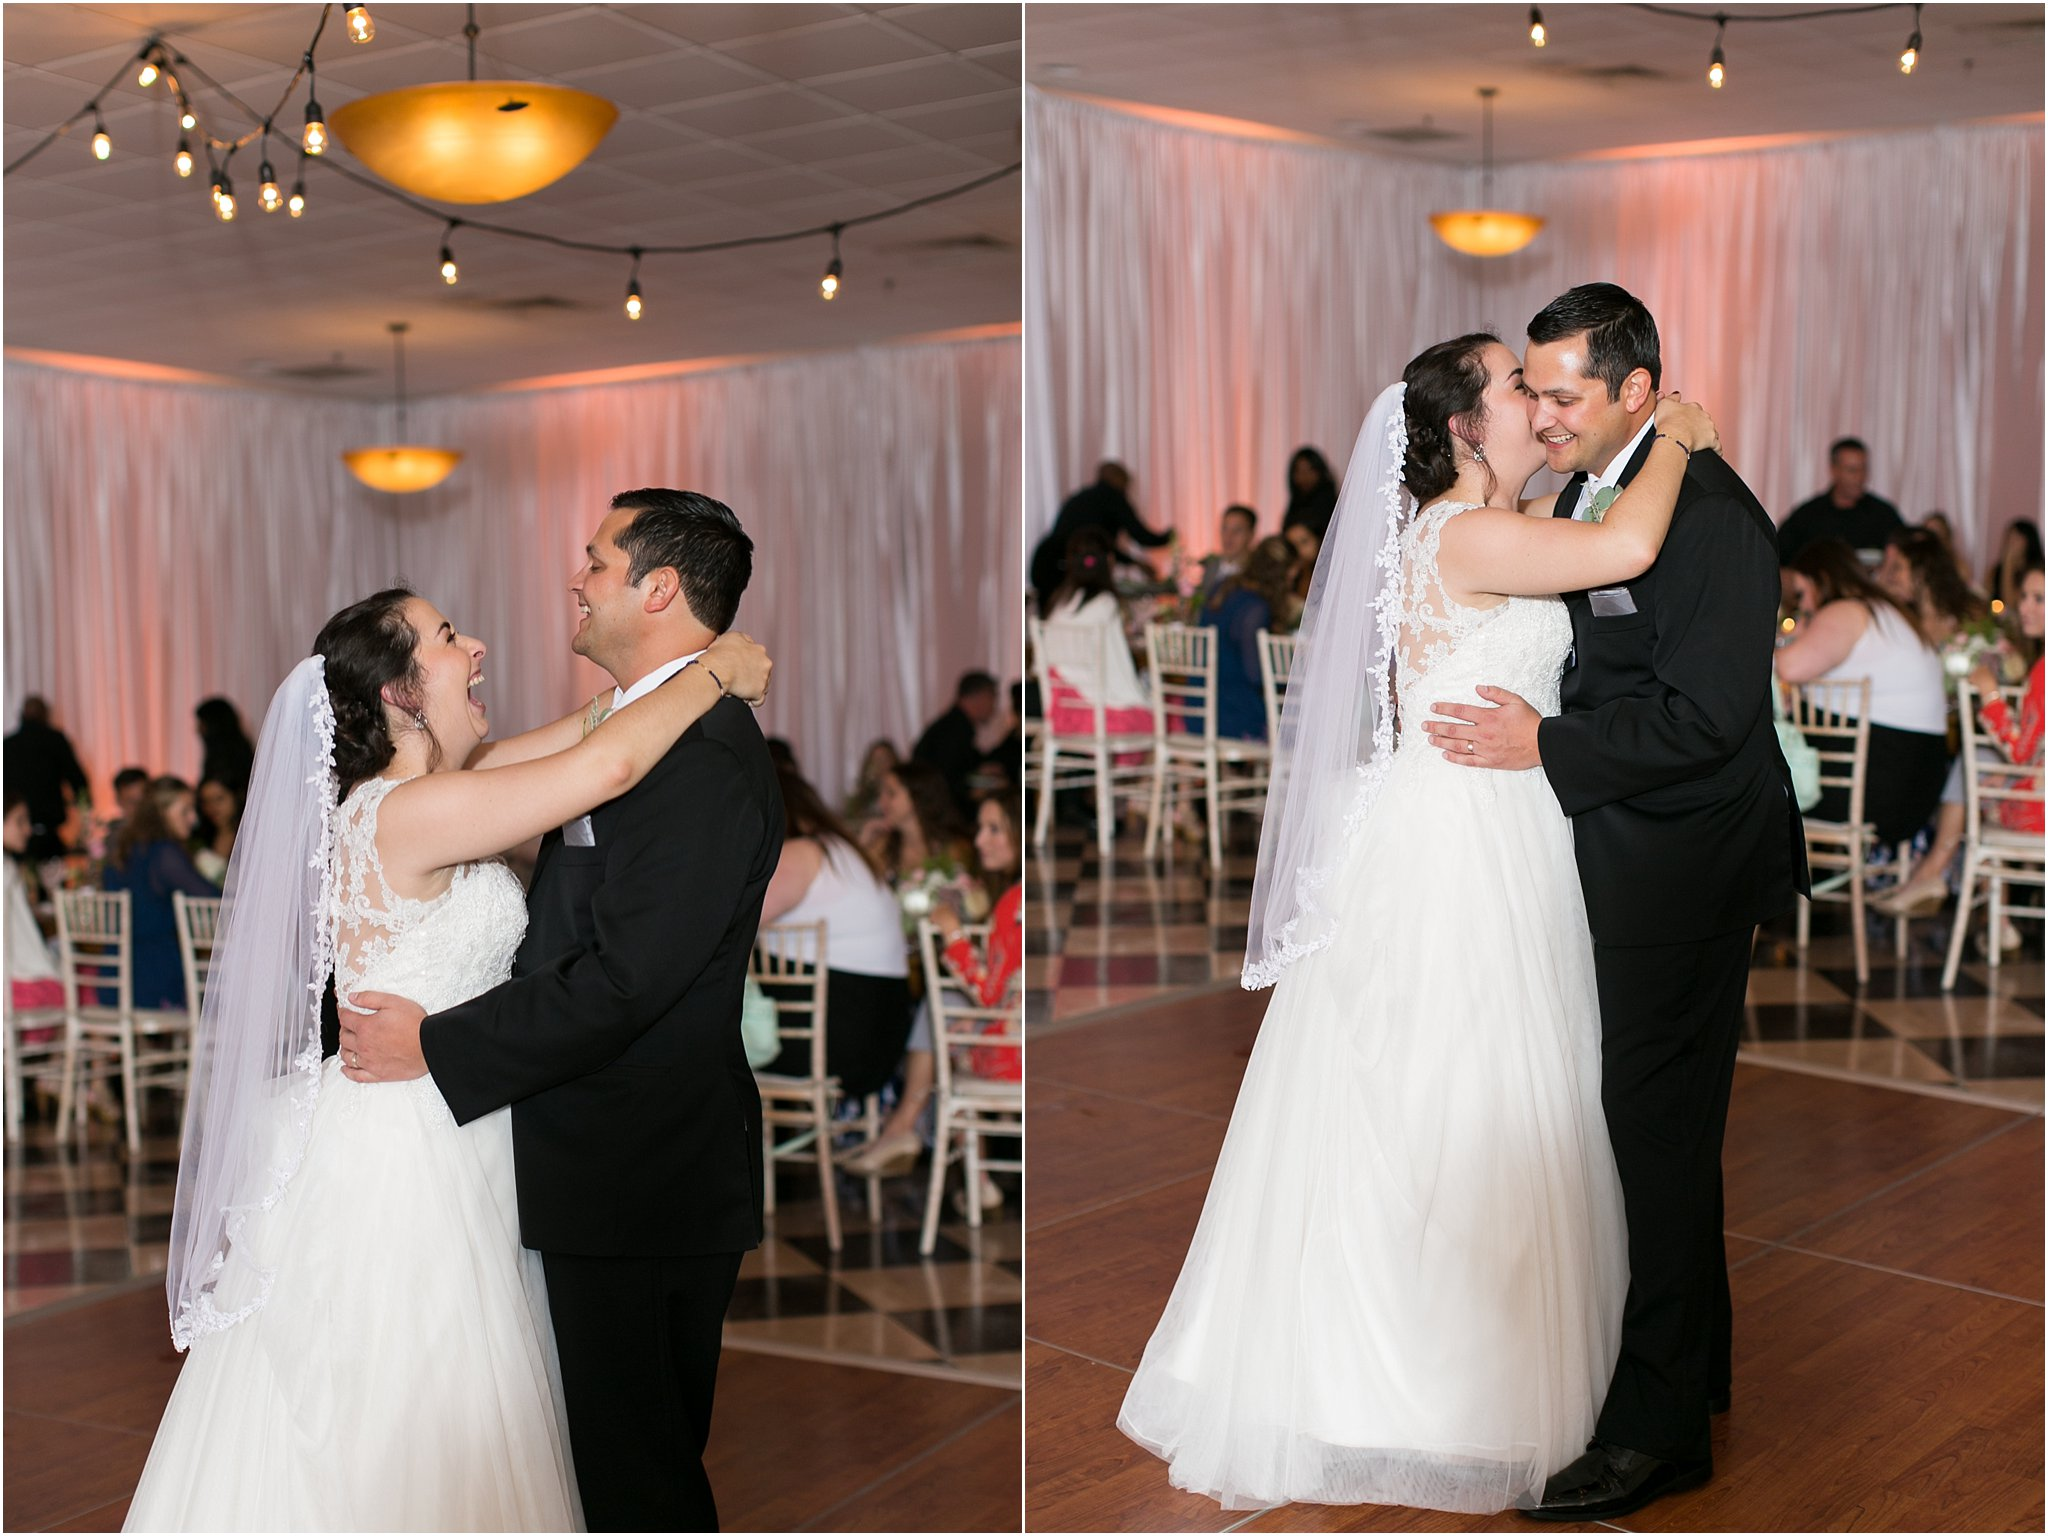 jessica_ryan_photography_virginia_wedding_photographer_wedding_hurricane_norfolk_botanical_gardens_hurricane_matthew_wedding_3629